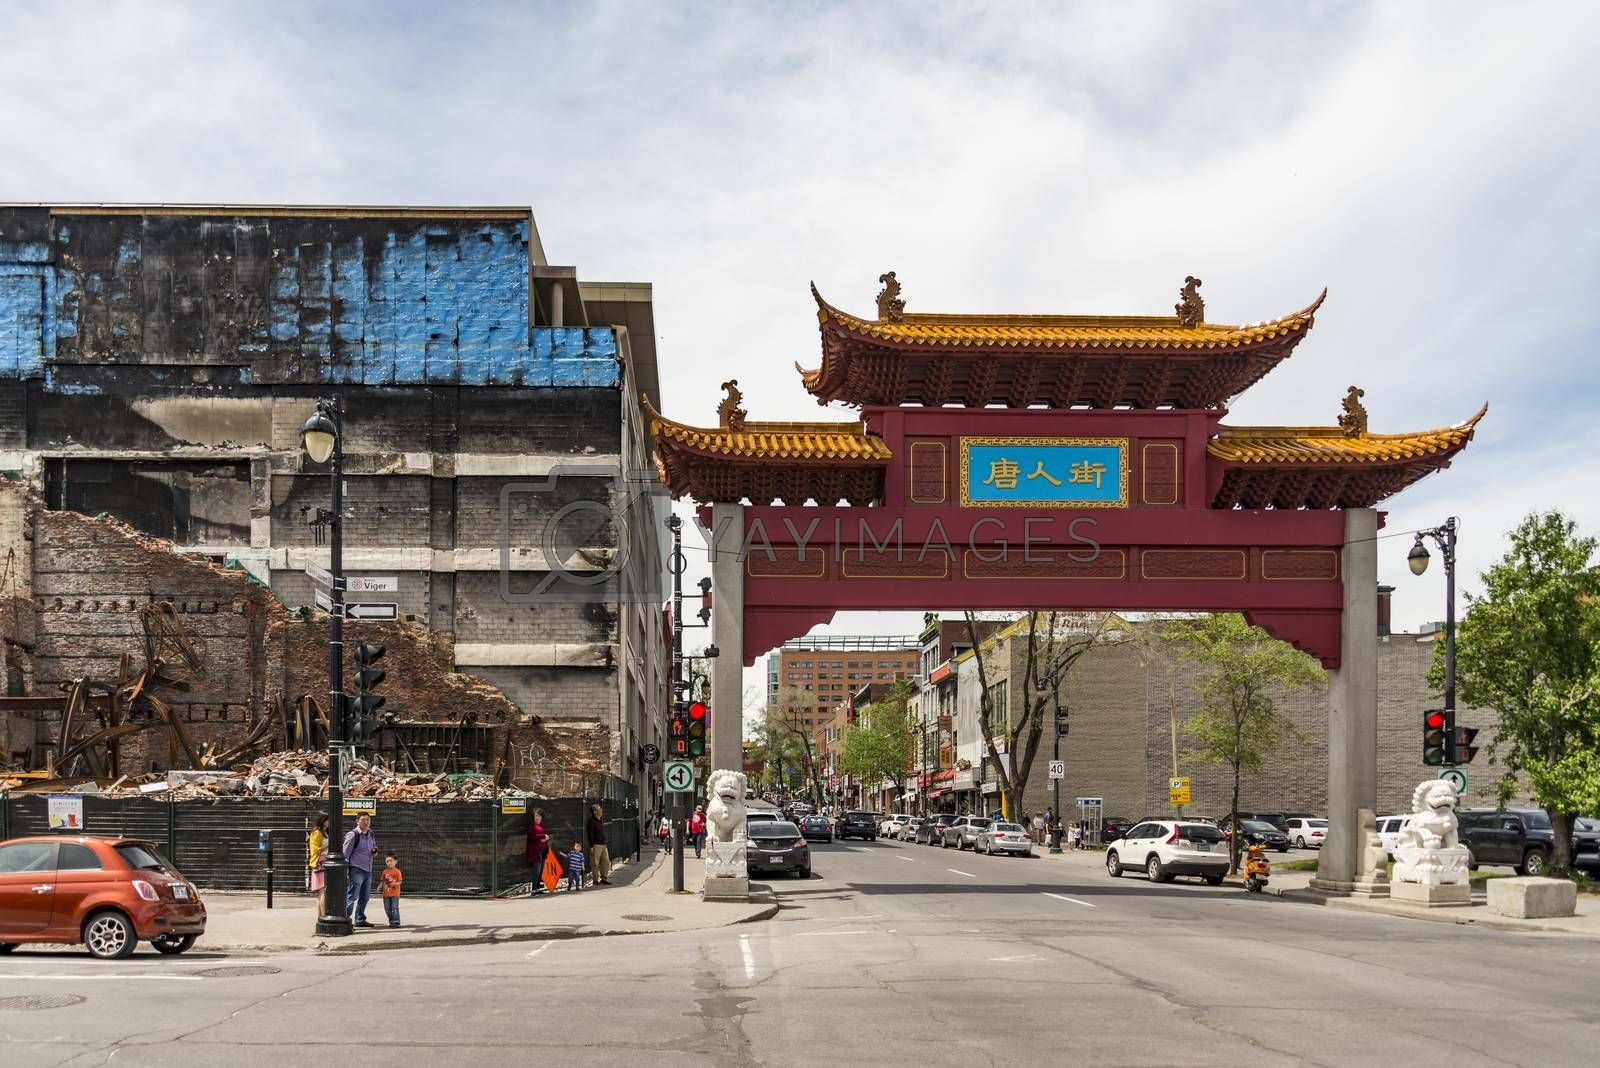 MONTREAL - MAY 28: Chinatown Gateway at the entrance of Montreal Chinatown at Boulvard St-Laurent on May 28, 2017 in Montreal, Quebec, Canada.